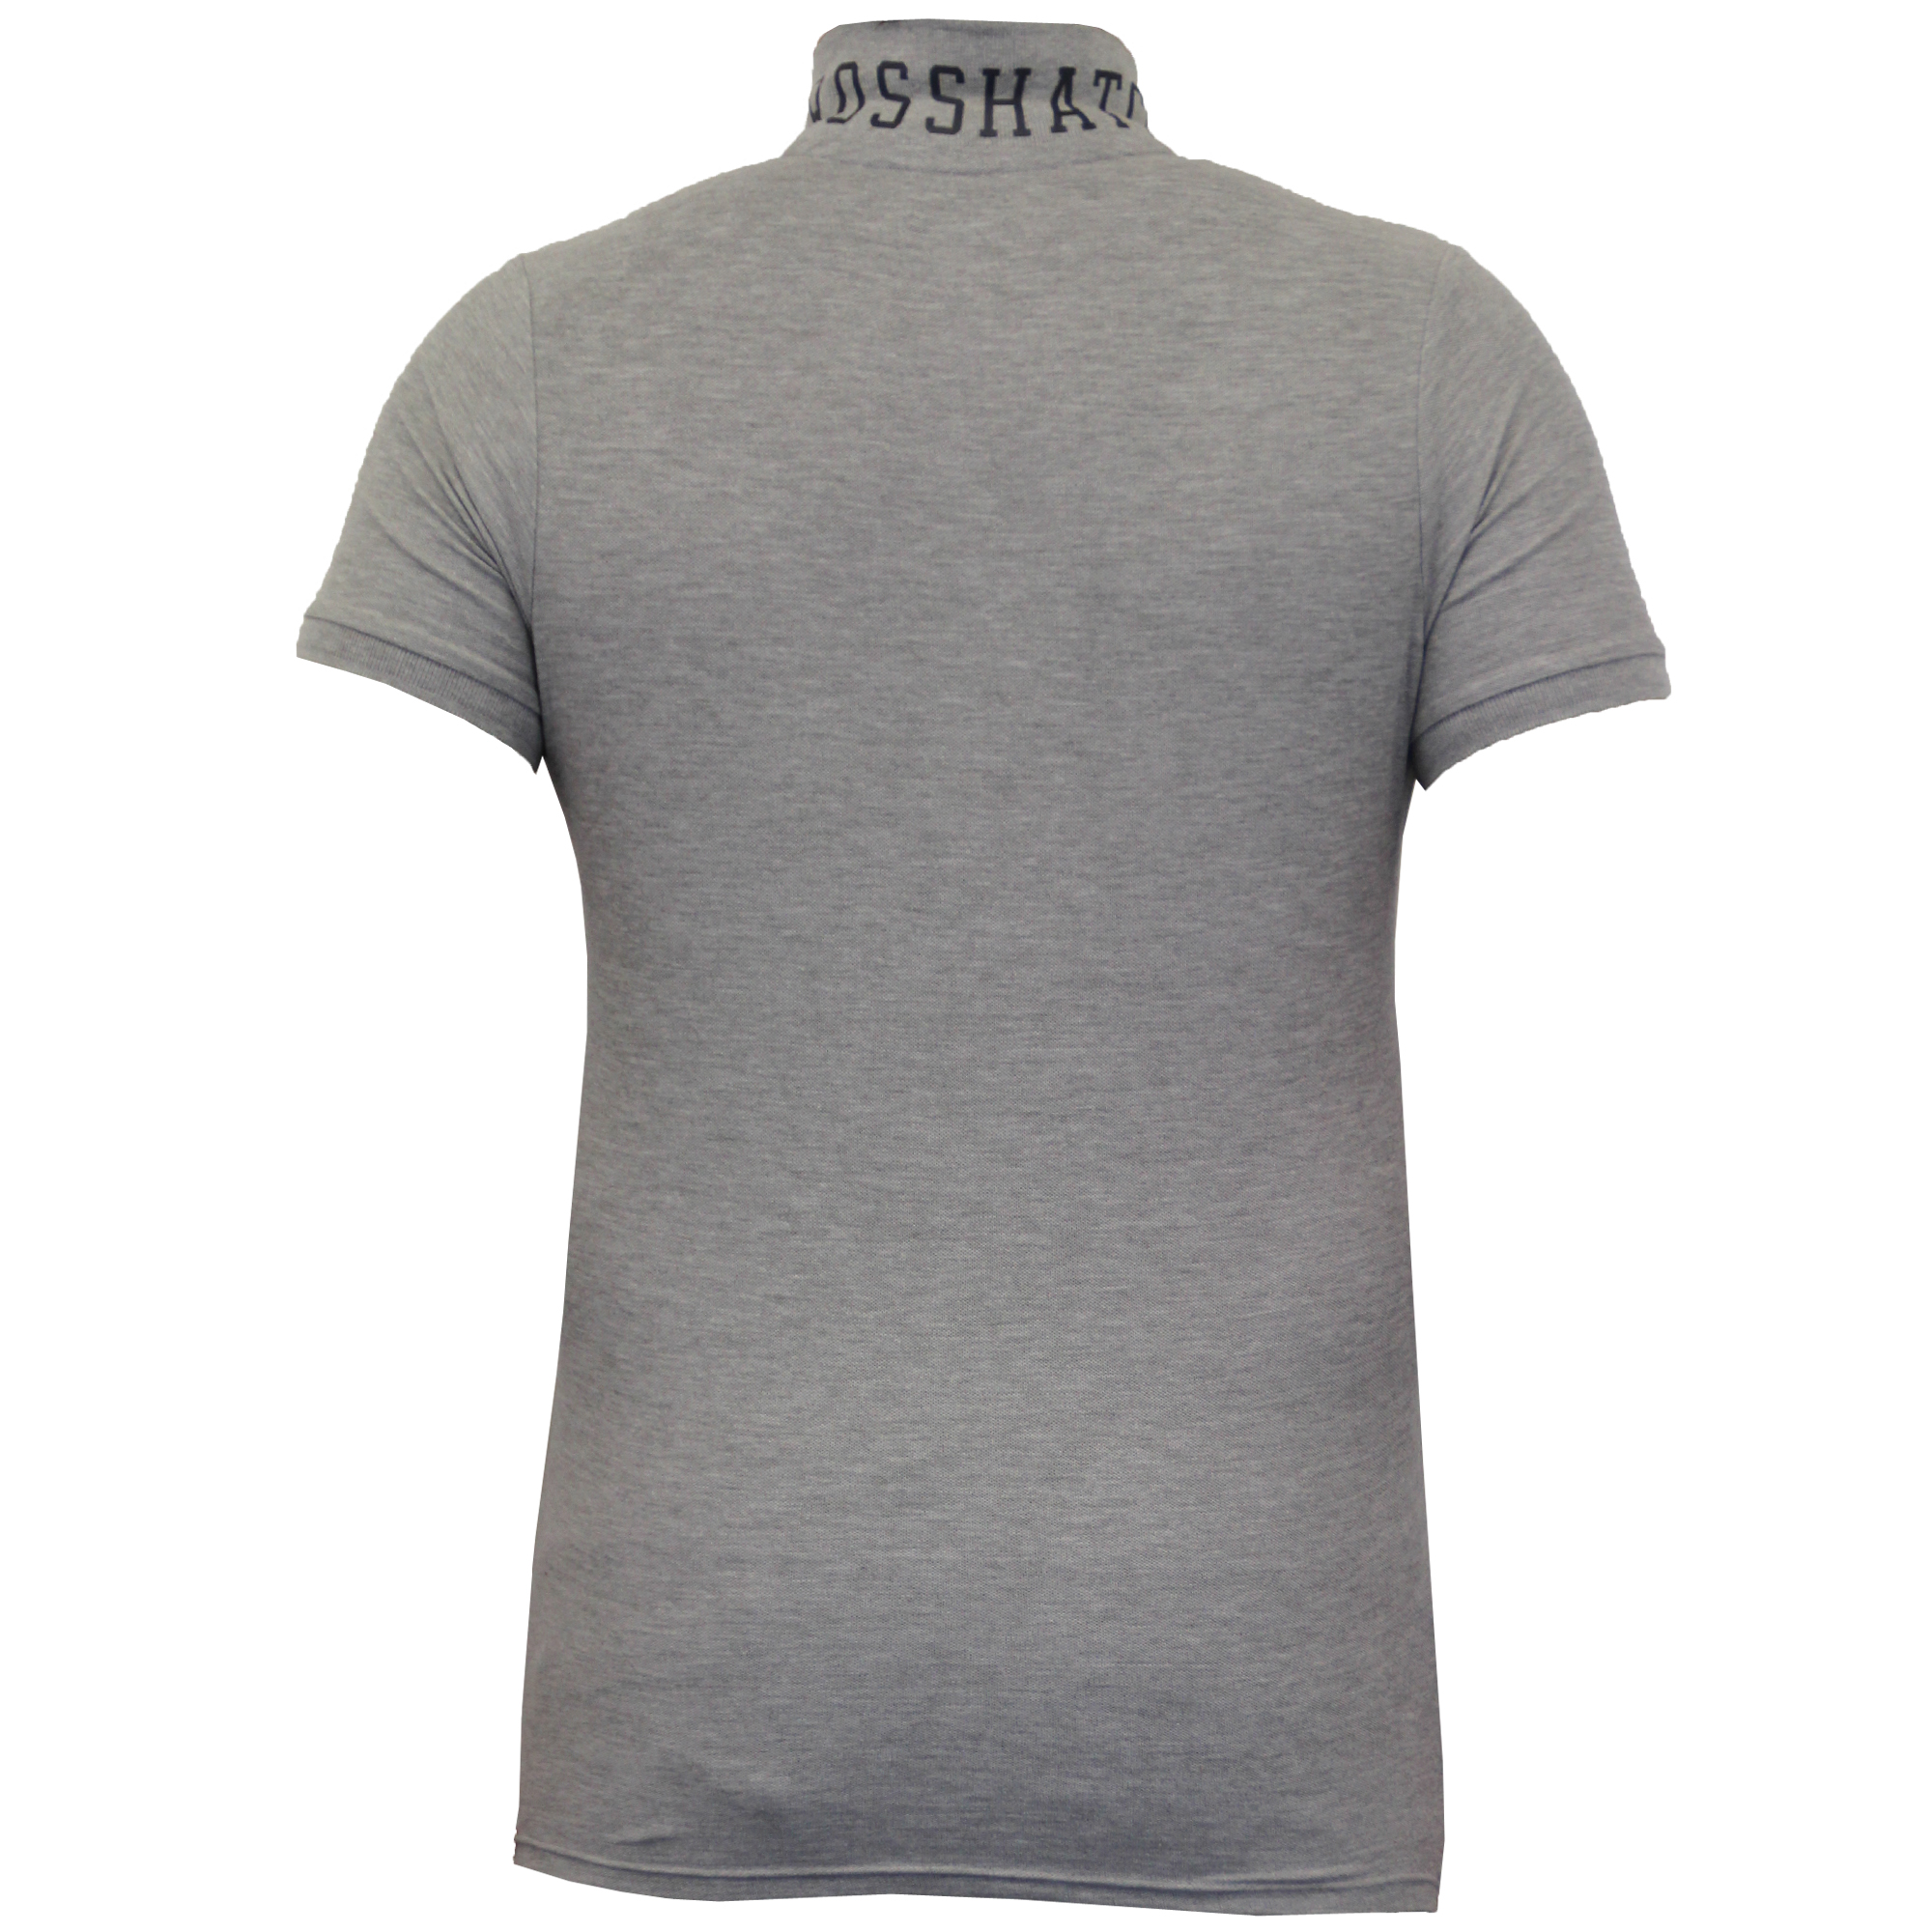 Mens-Polo-T-Shirt-Crosshatch-Pique-Top-Cotton-Short-Sleeved-Collared-Summer-New thumbnail 3